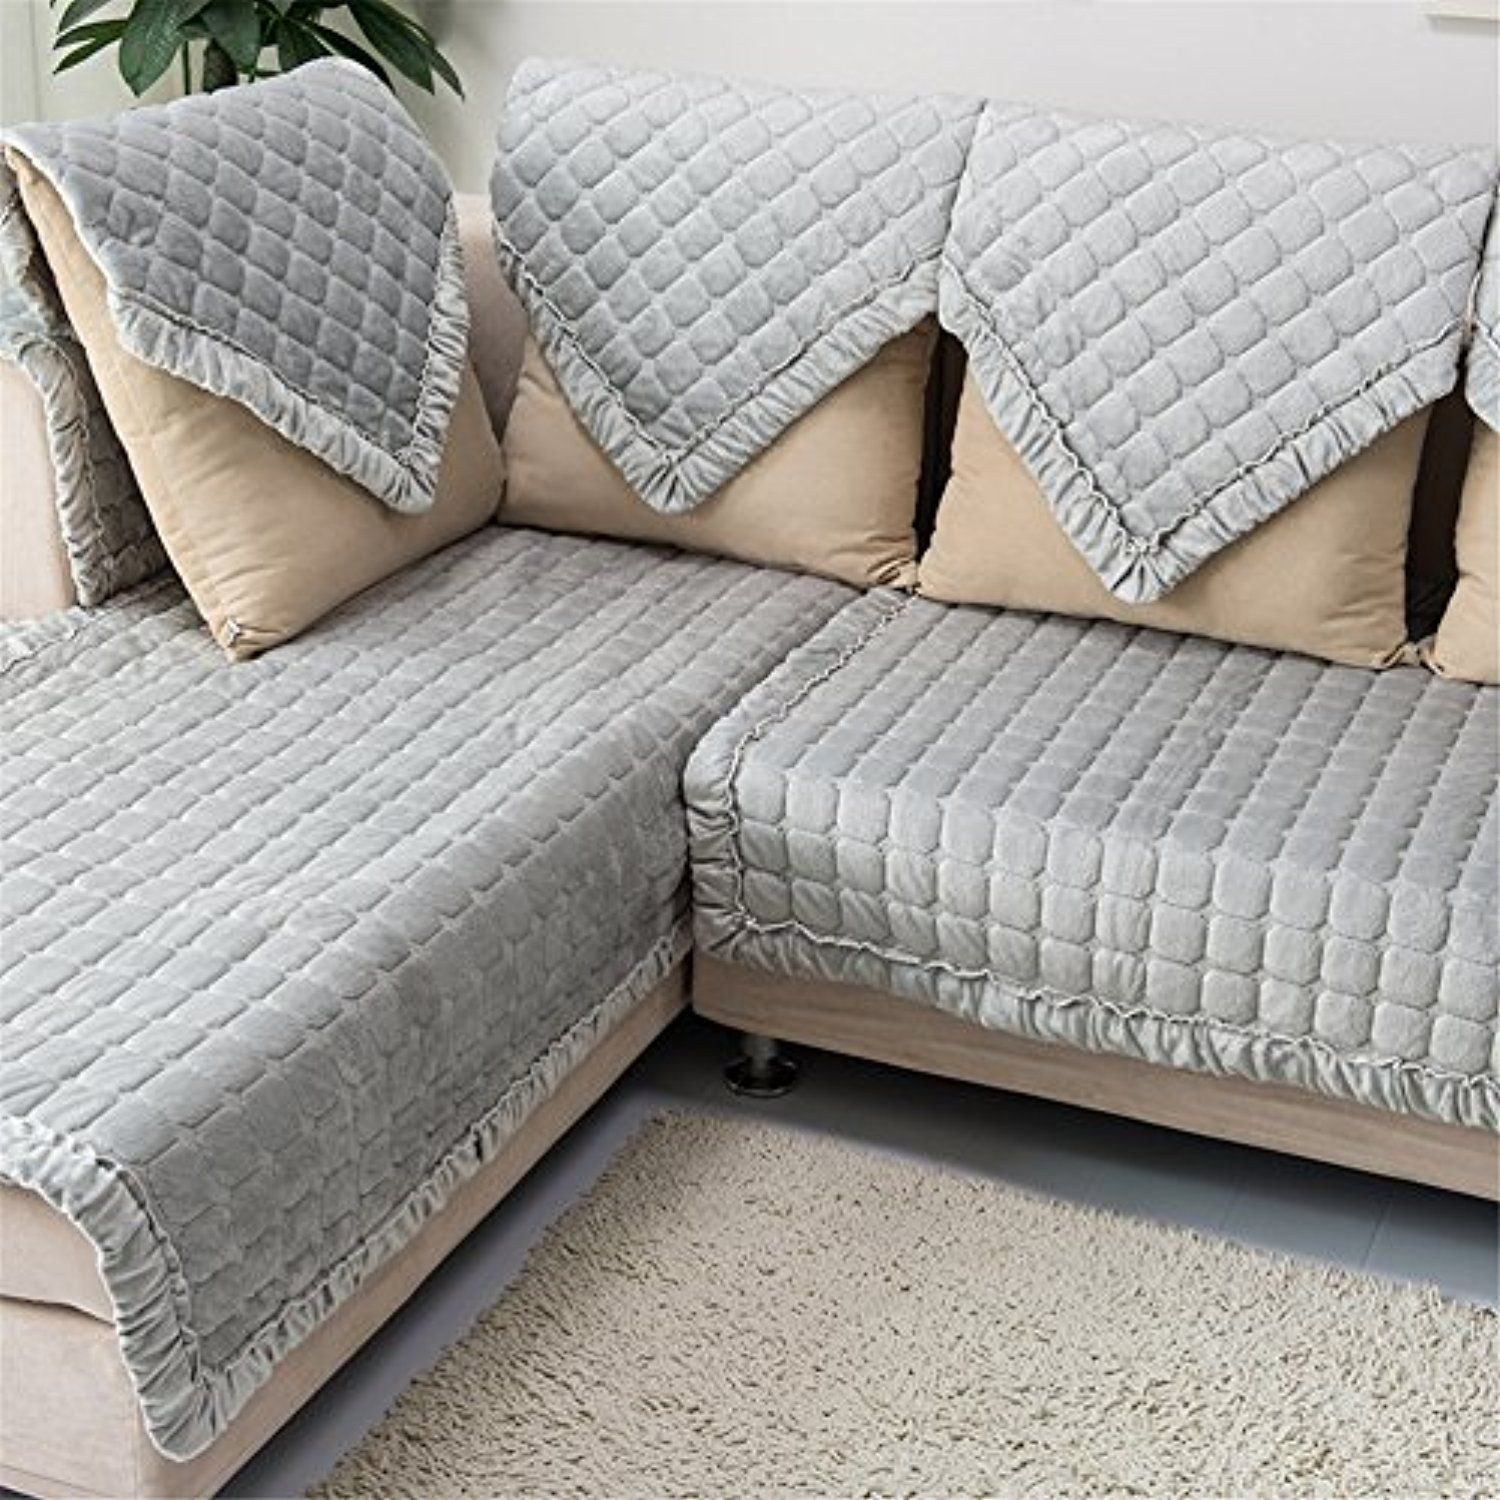 Ostepdecor Multi Size Pet Dog Couch Rectangular Winter Quilted